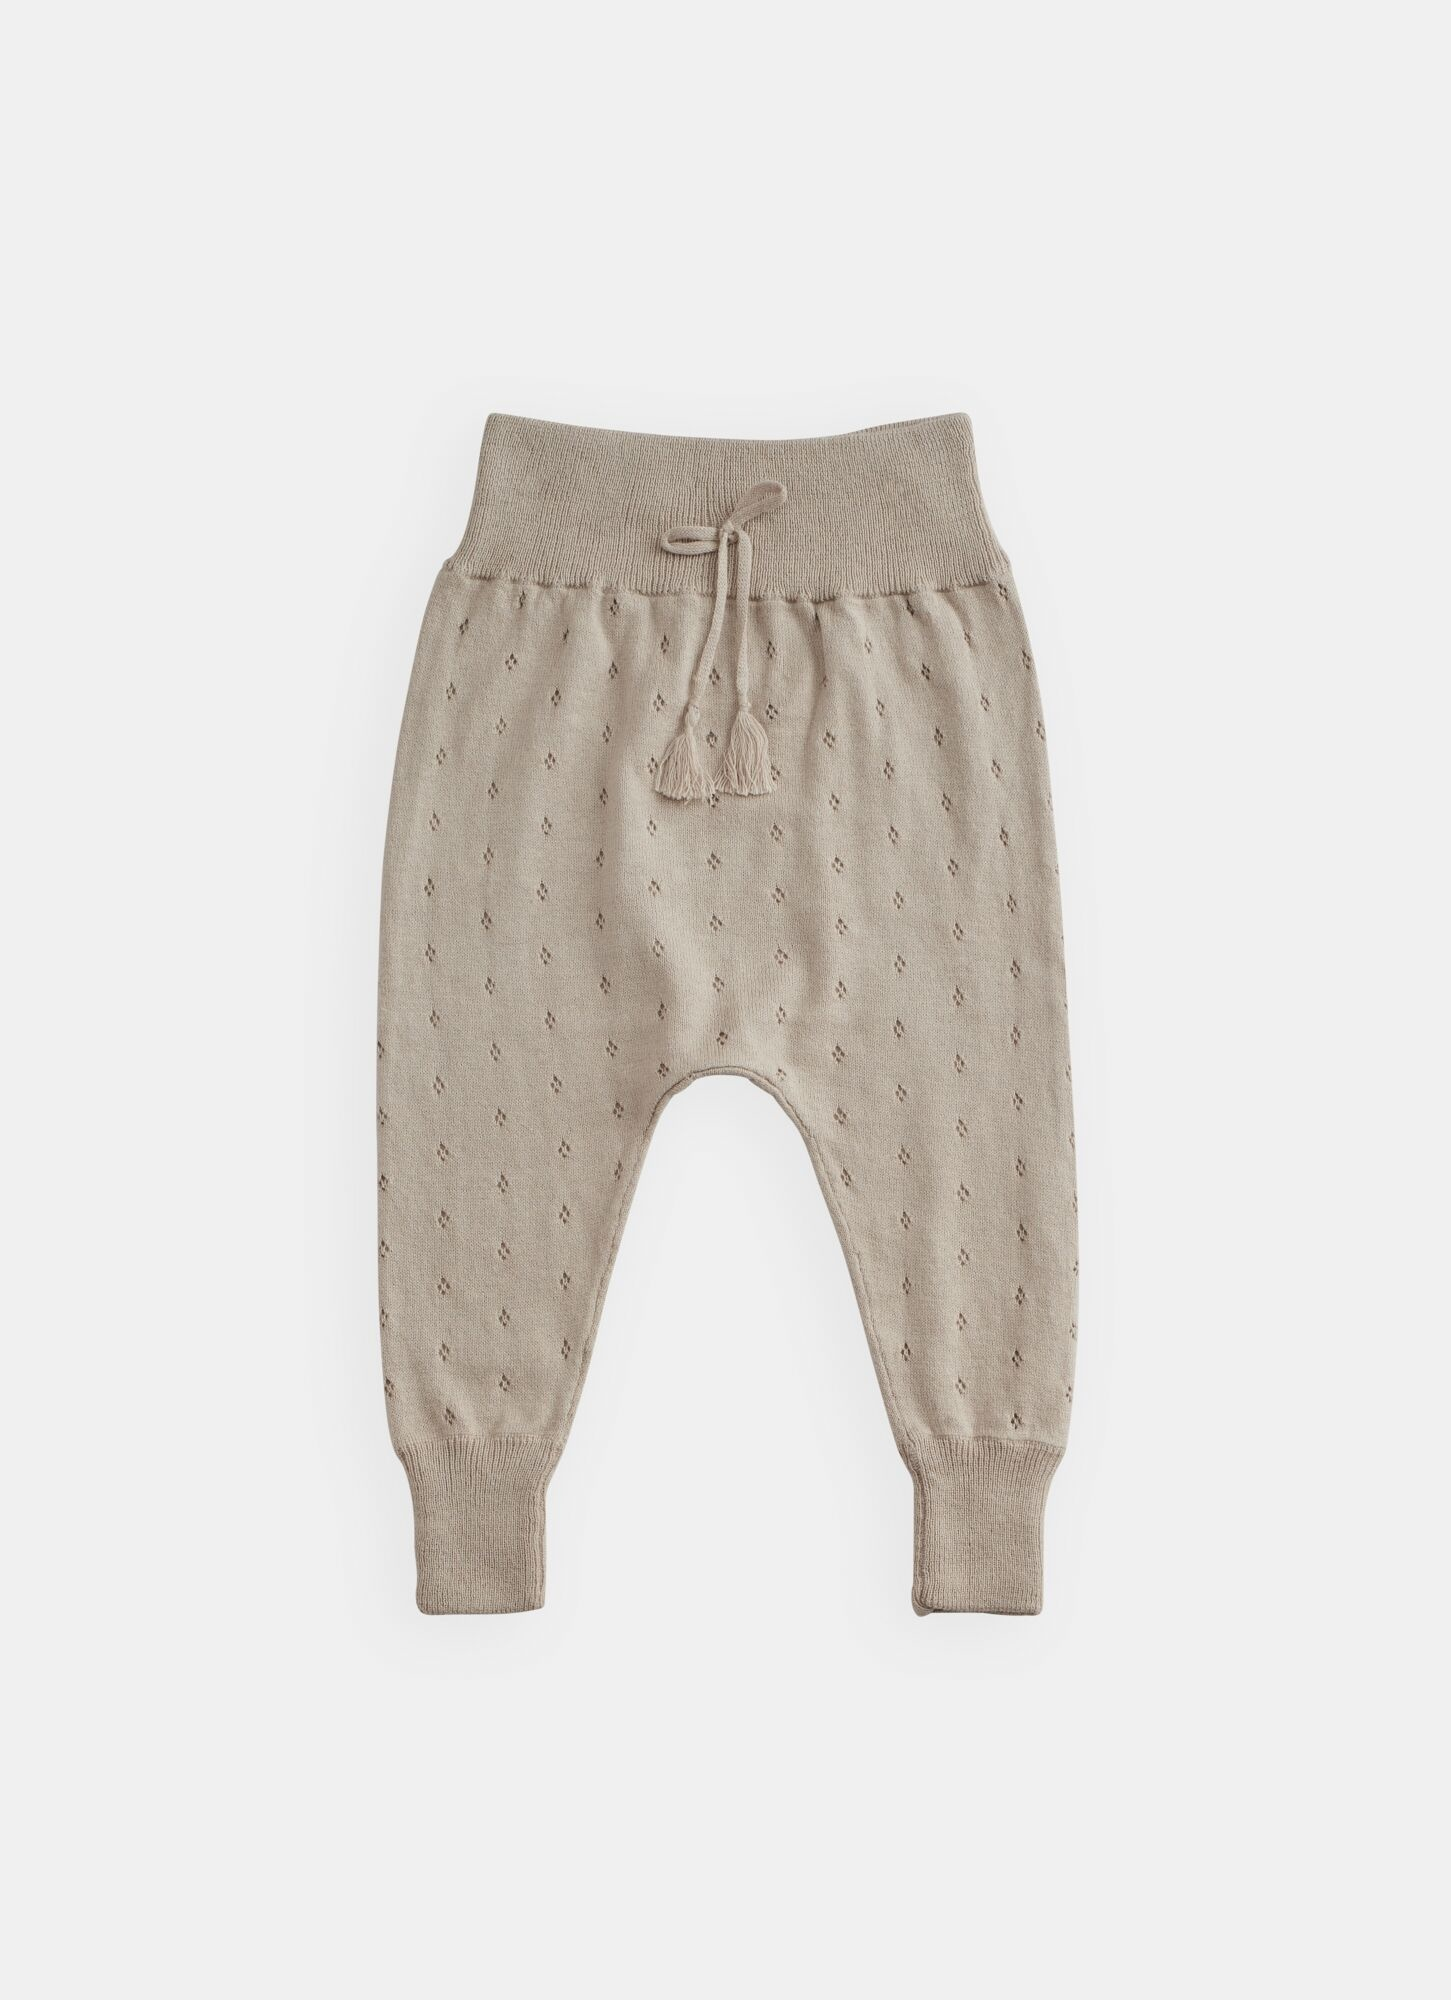 BELLE ENFANT Pointelle Pant